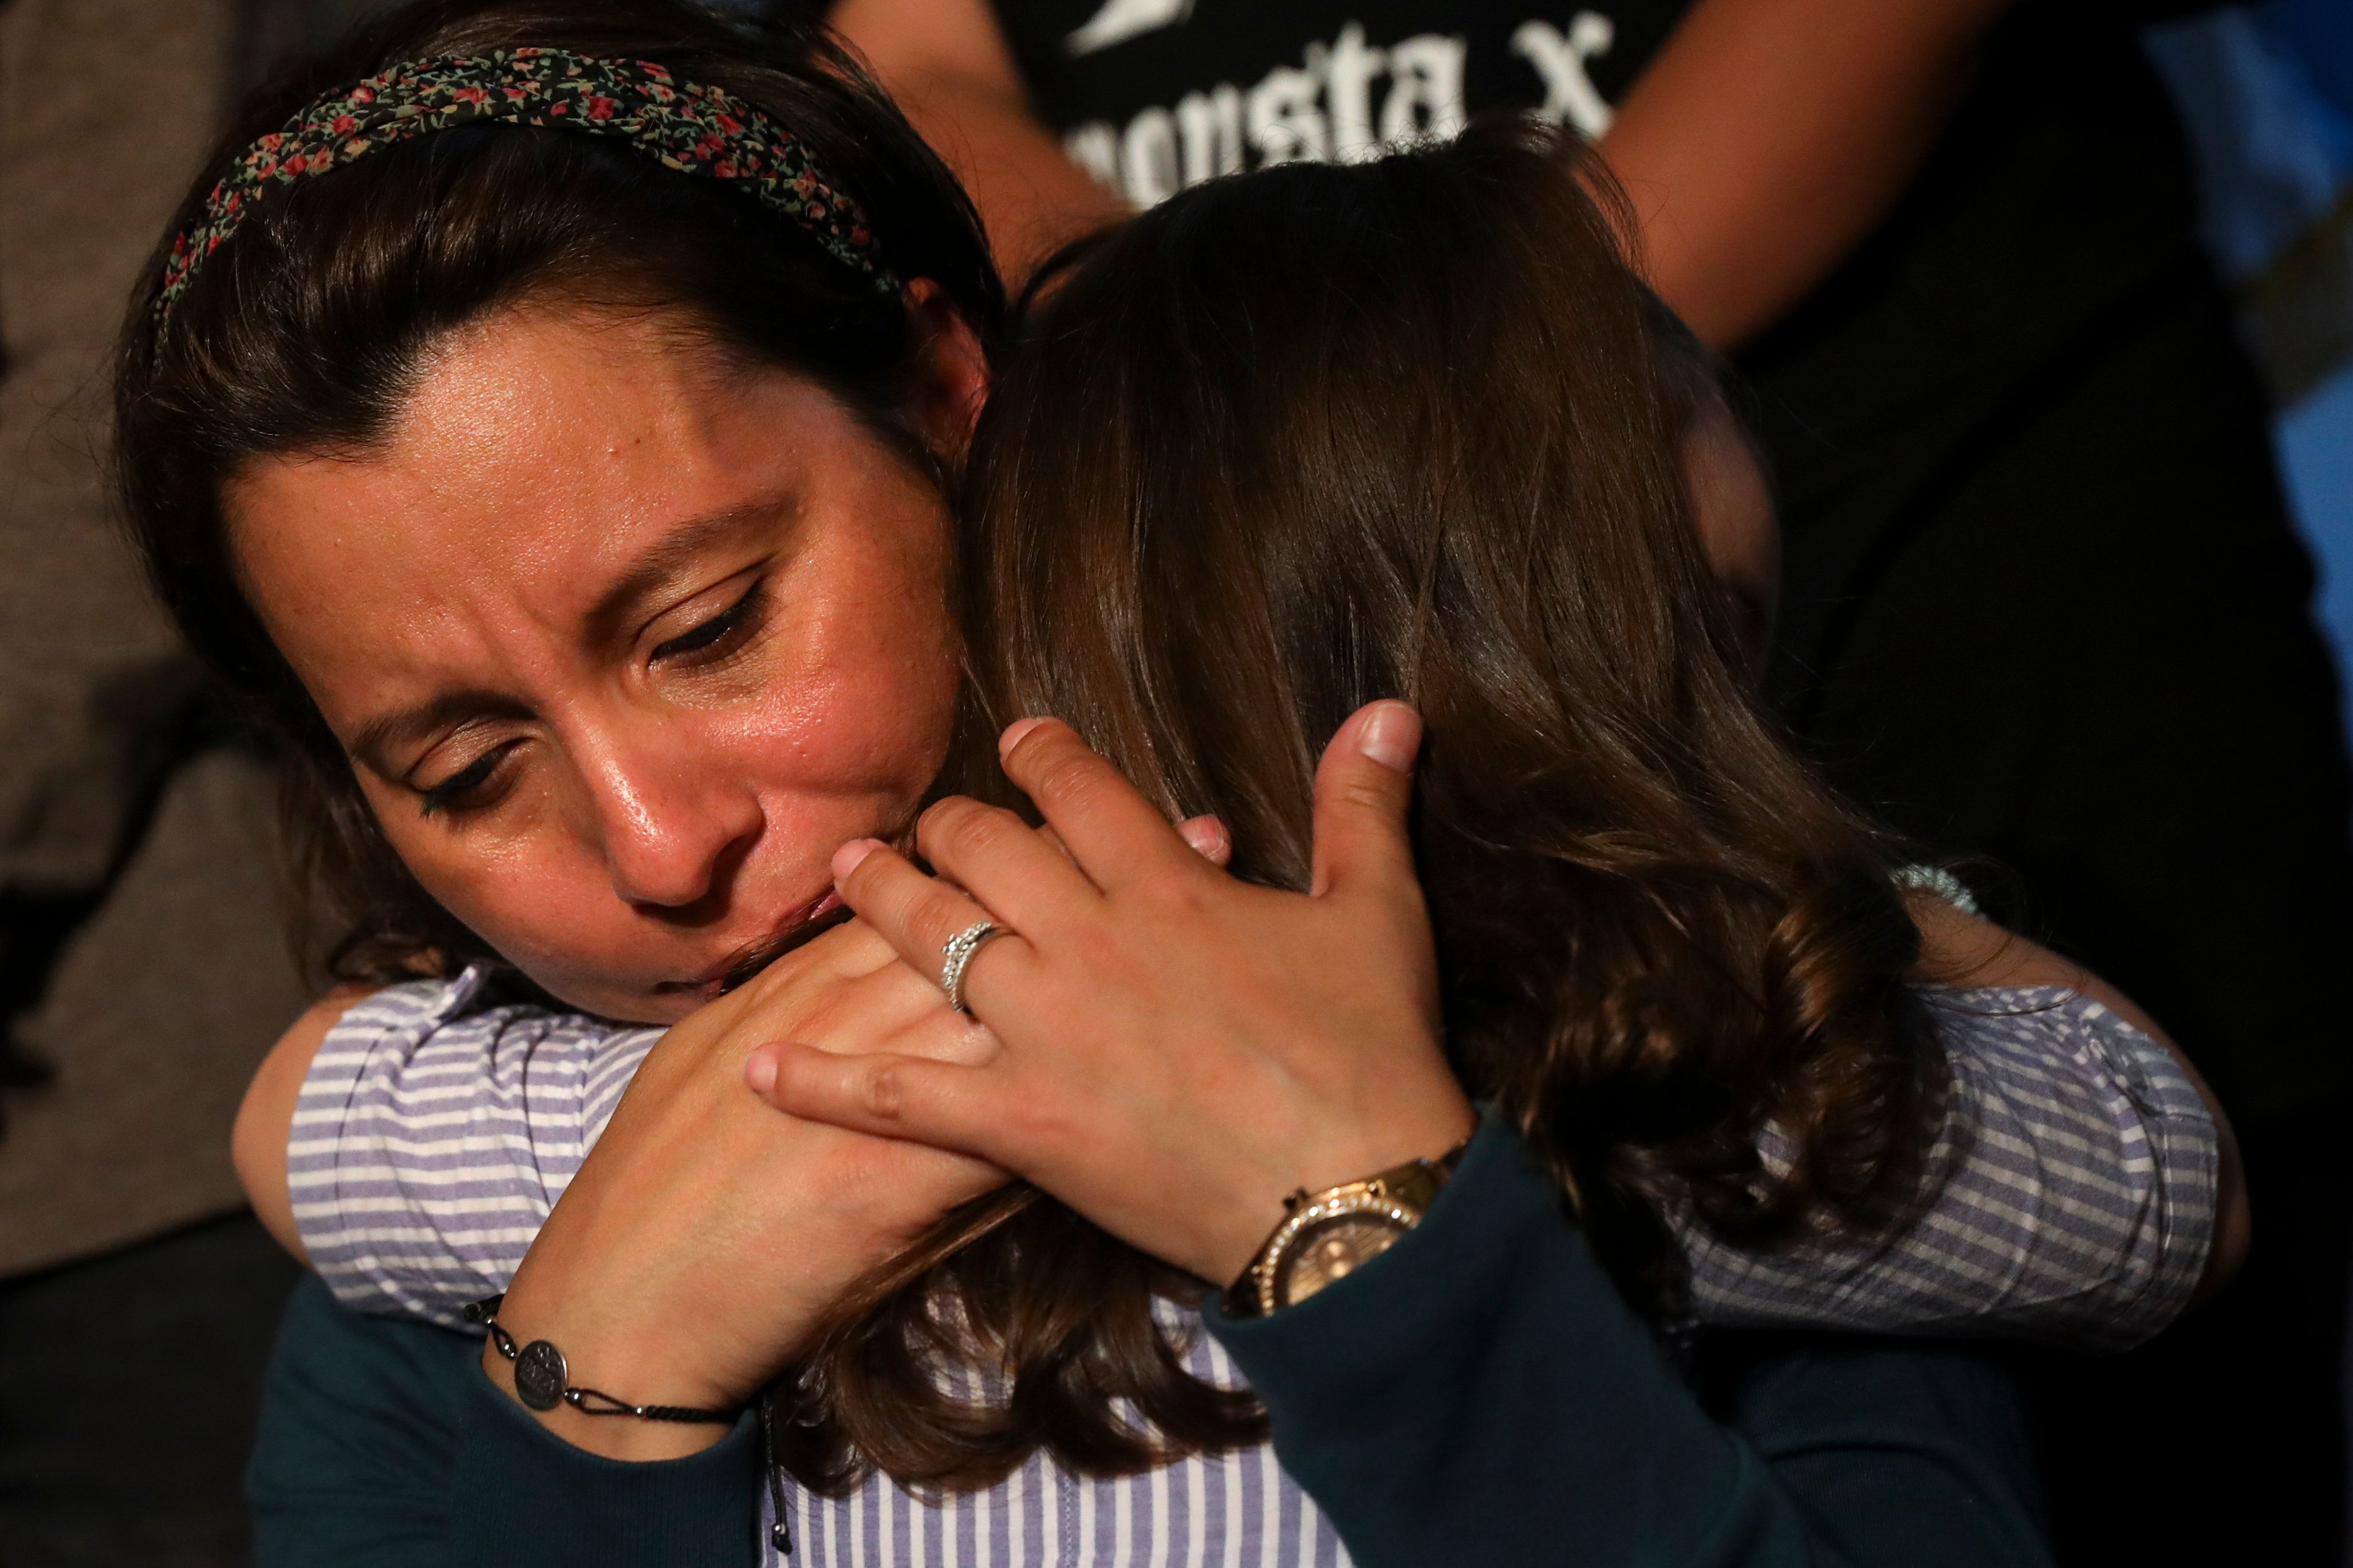 NEW YORK, NY - JULY 23:  Sandra Chica, wife of Pablo Villavicencio, hugs her daughter Luciana during an advocacy rally and press conference in support of Pablo Villavicencio, who was arrested and detained in early June by Immigration and Customs Enforcement (ICE) after making a catering delivery to Fort Hamilton Army Base in Brooklyn, July 23, 2018 at City Hall in New York City. Supporters of Villavicencio plan to rally in his support outside of the federal courthouse during his court hearing on Tuesday morning. (Photo by Drew Angerer/Getty Images)